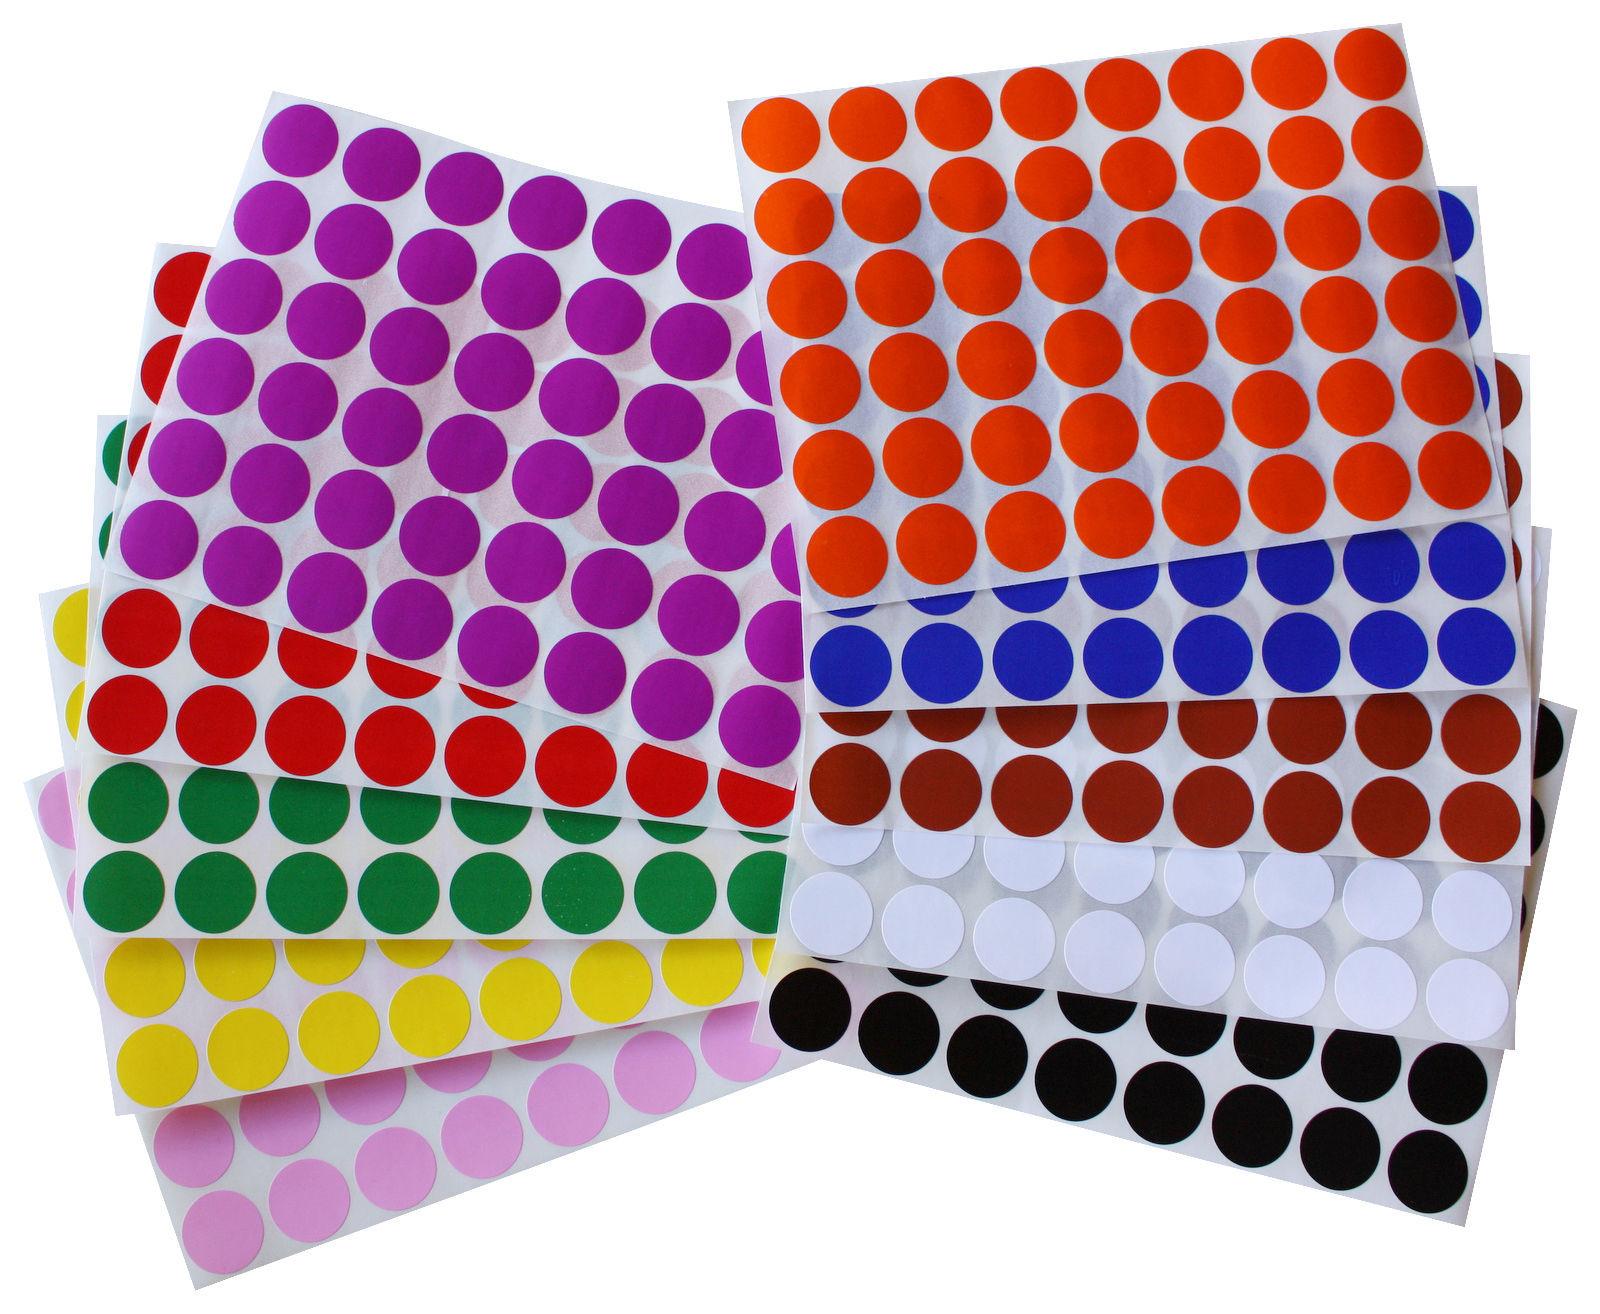 Colored Dot Stickers 28 Images Colored Dot Stickers A244 Multi Colored Dot Stickers Erin